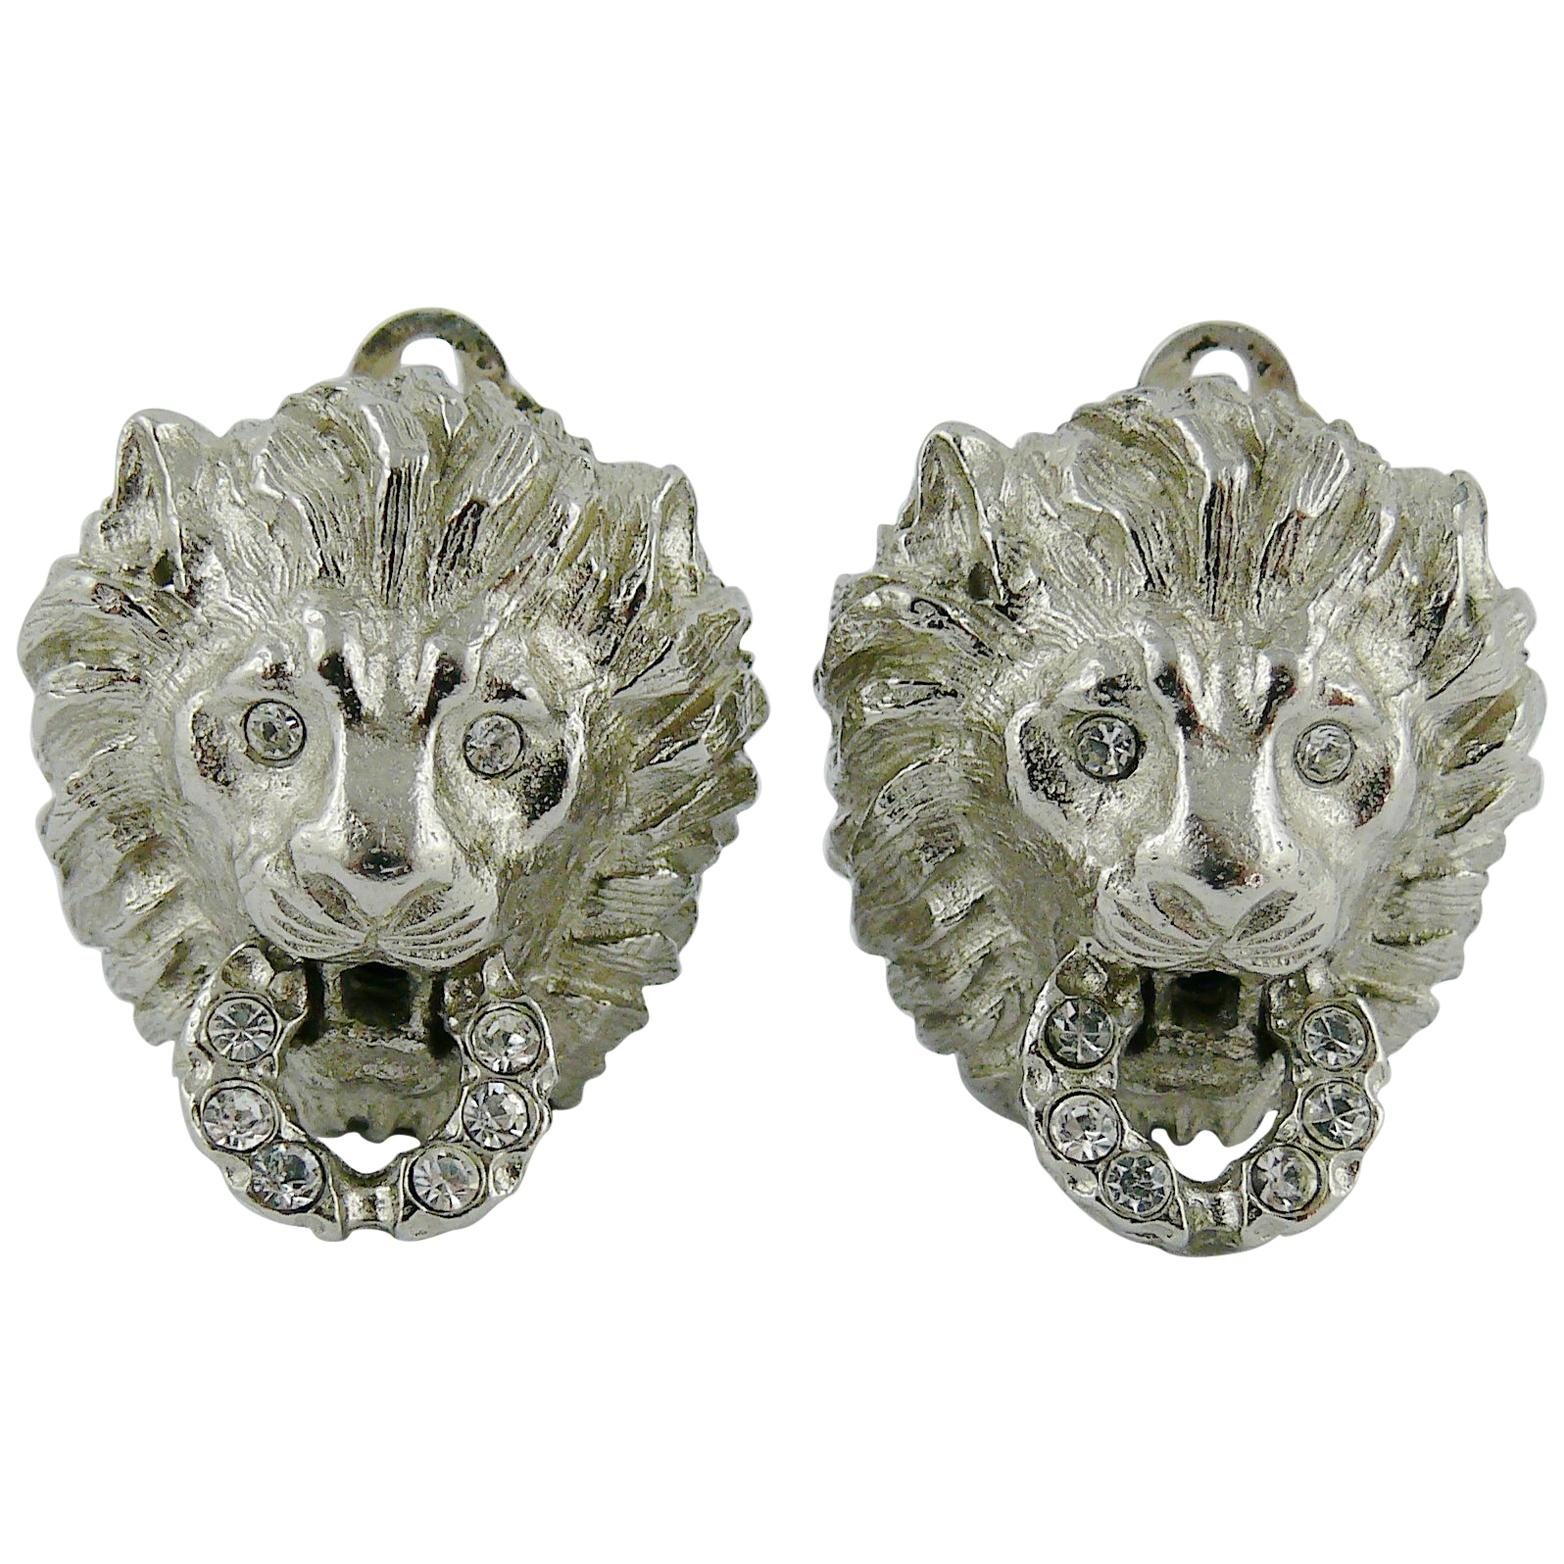 Christian Dior Boutique Vintage Jewelled Silver Tone Lion Door Knocker  Earrings